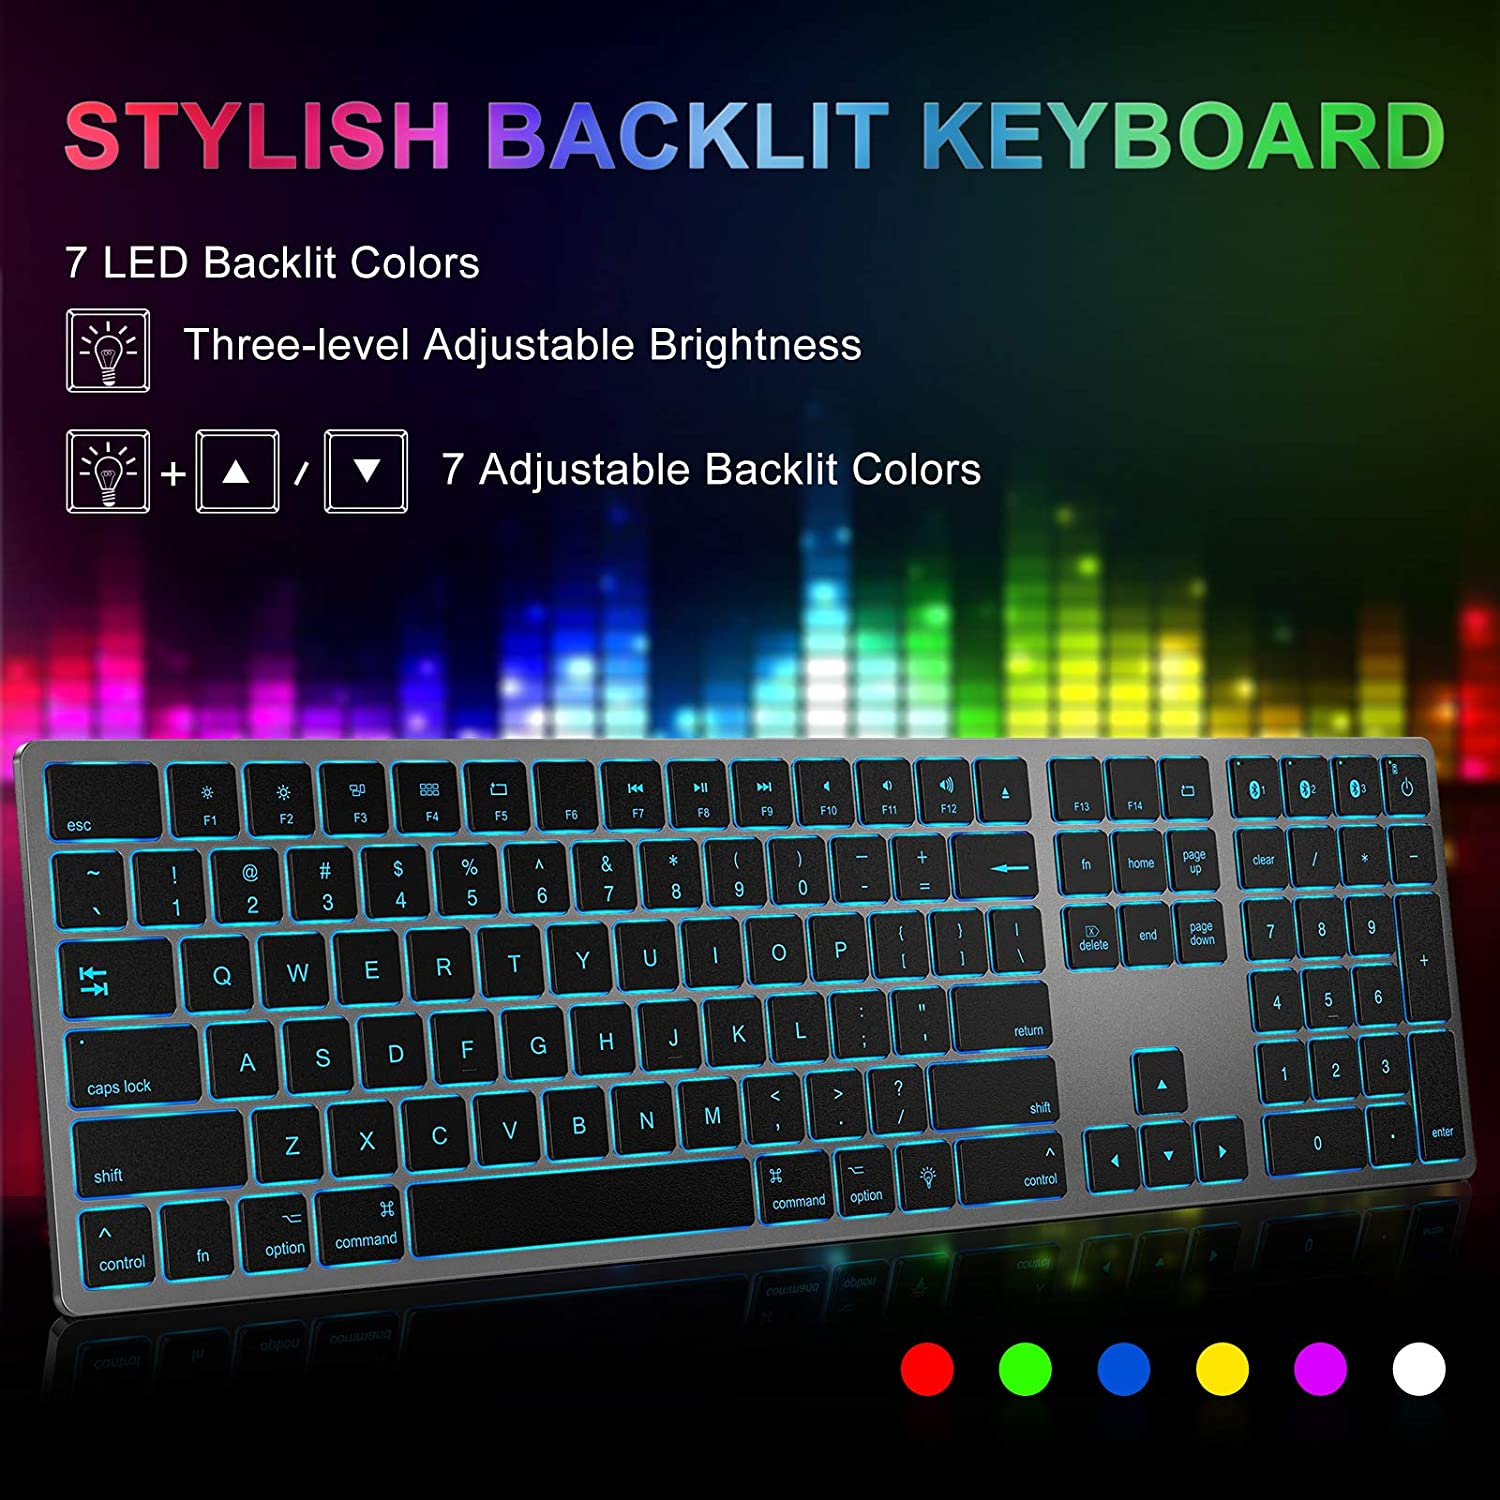 Easy Switch to 3 Devices iPad MagoFeliz Ultra Slim Rechargeable Wireless Keyboard 7 Colors Backlit Compatible with Mac MacBook Pro//Air iPhone Multi-Device Backlit Bluetooth Keyboard for Mac